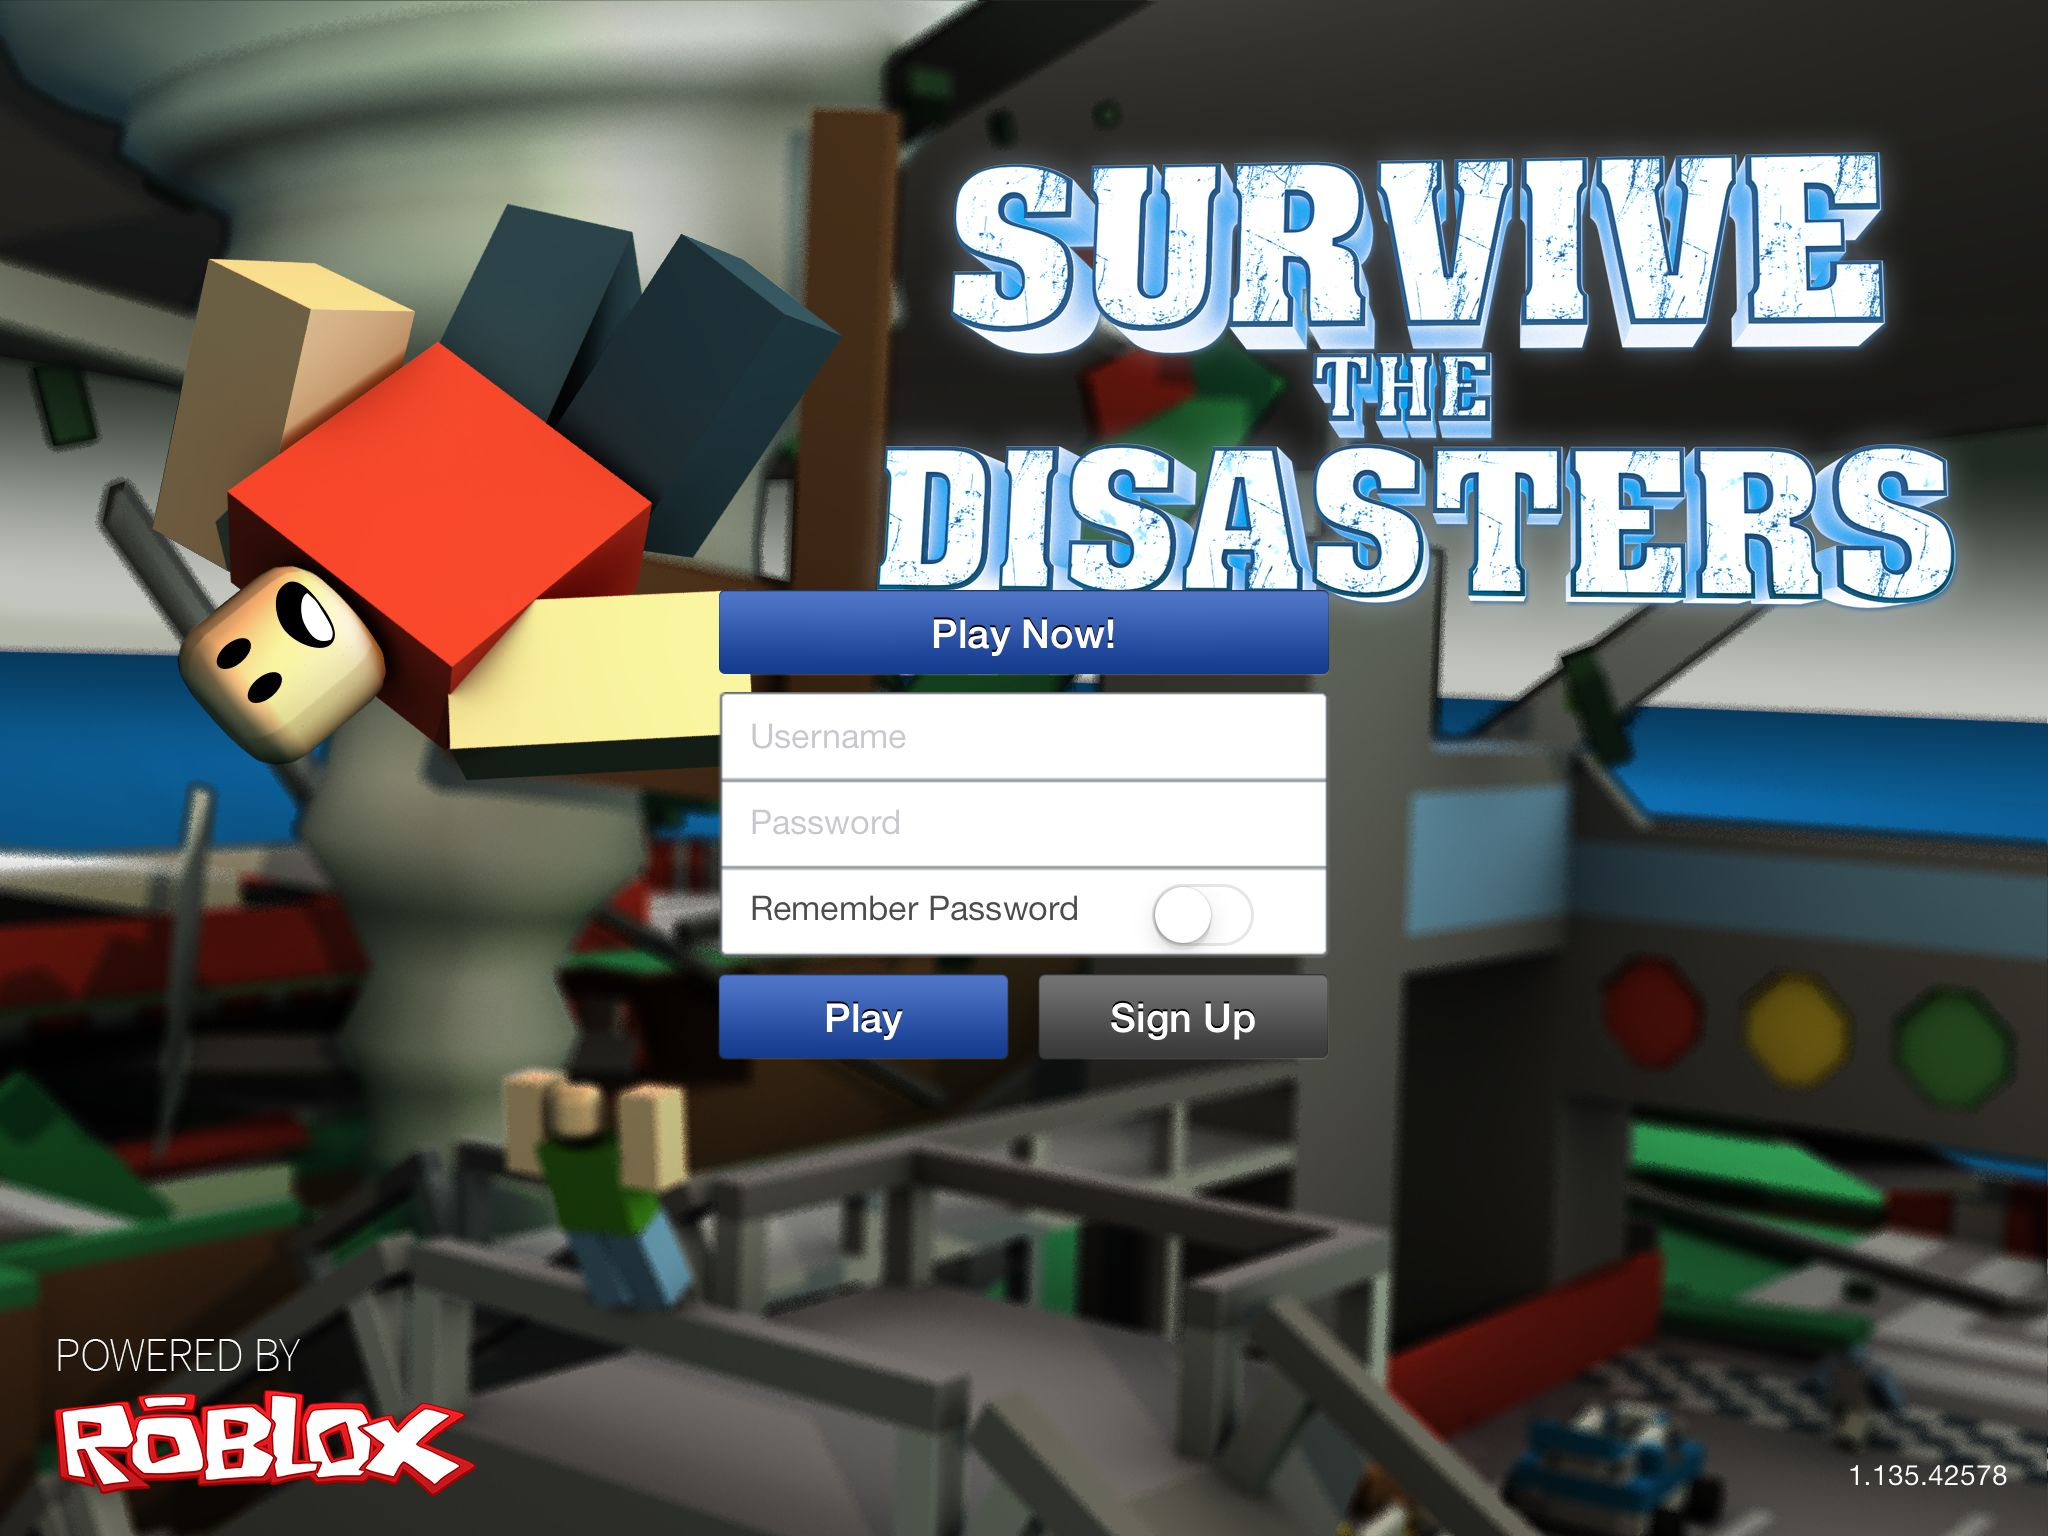 survive the disasters has its own app